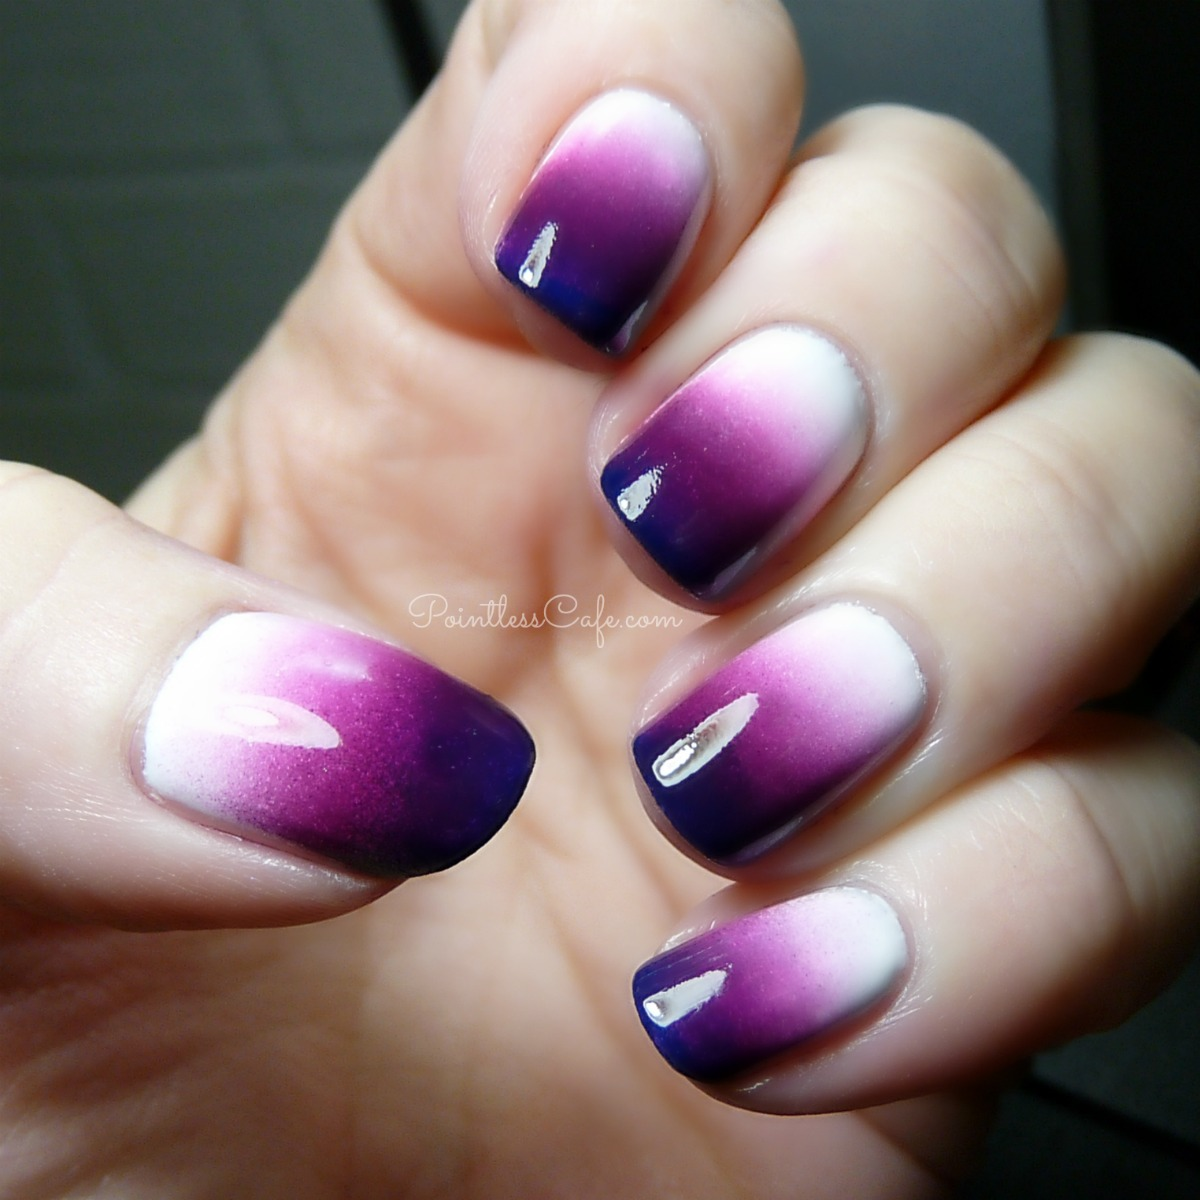 White color nail art - The Digital Dozen Does Winter Wonderland Day Winters Chill Purple And White Nail Art